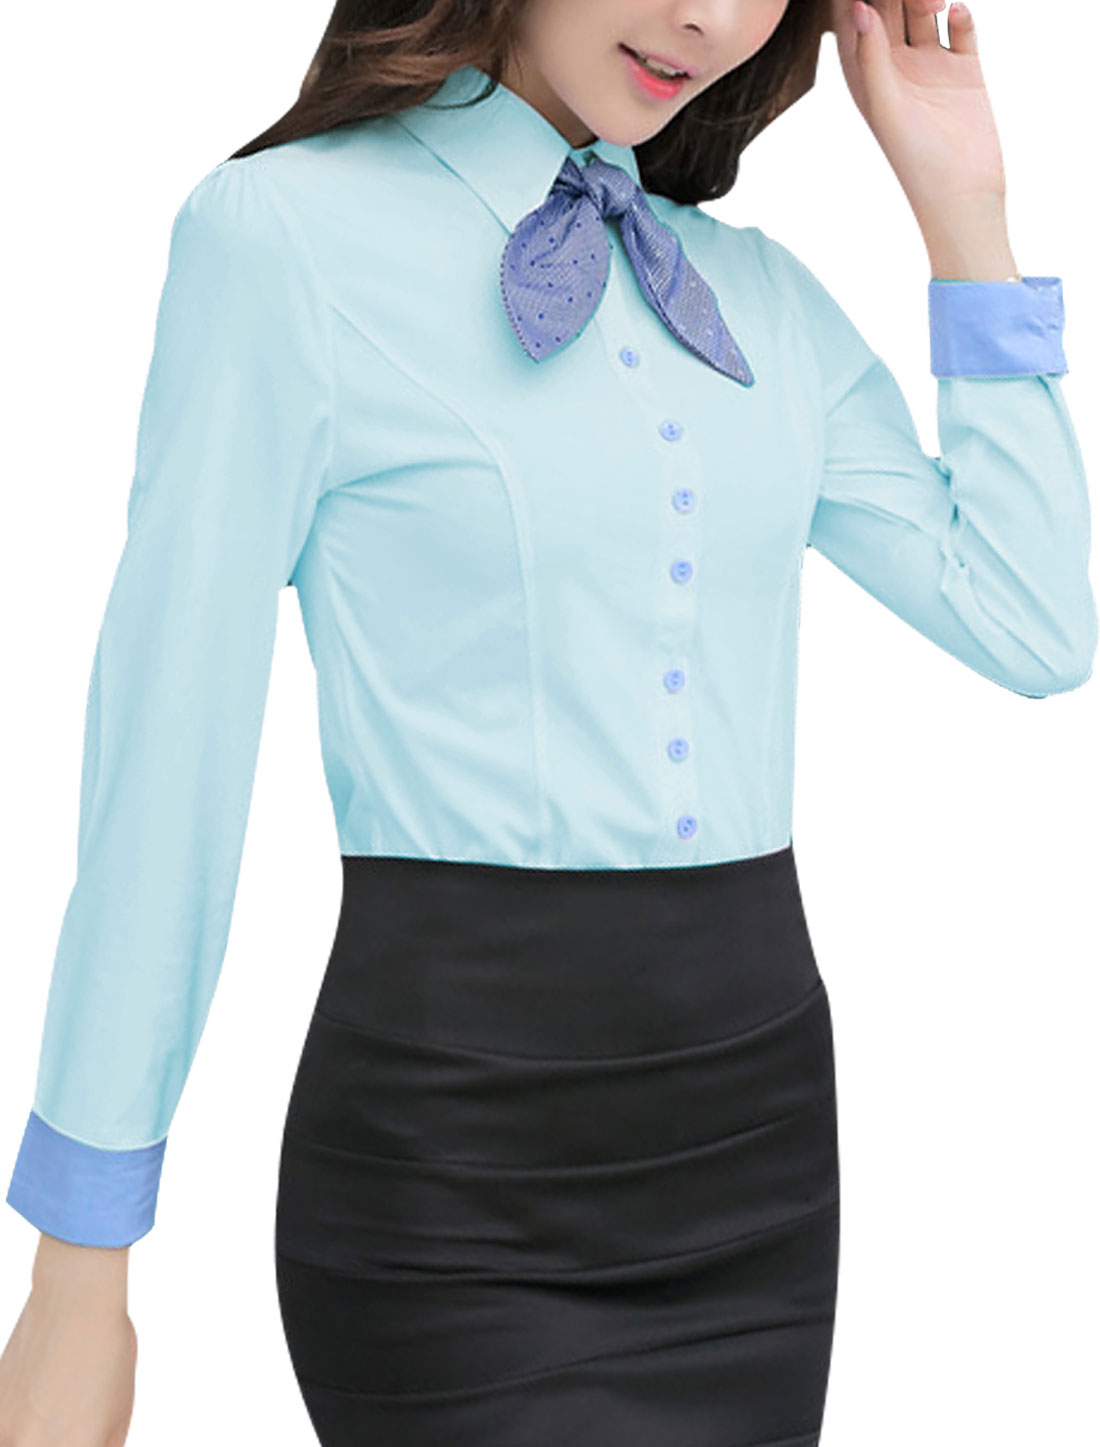 Lady Point Collar Round Hem Shirt w Removable Bow Tie Light Blue L